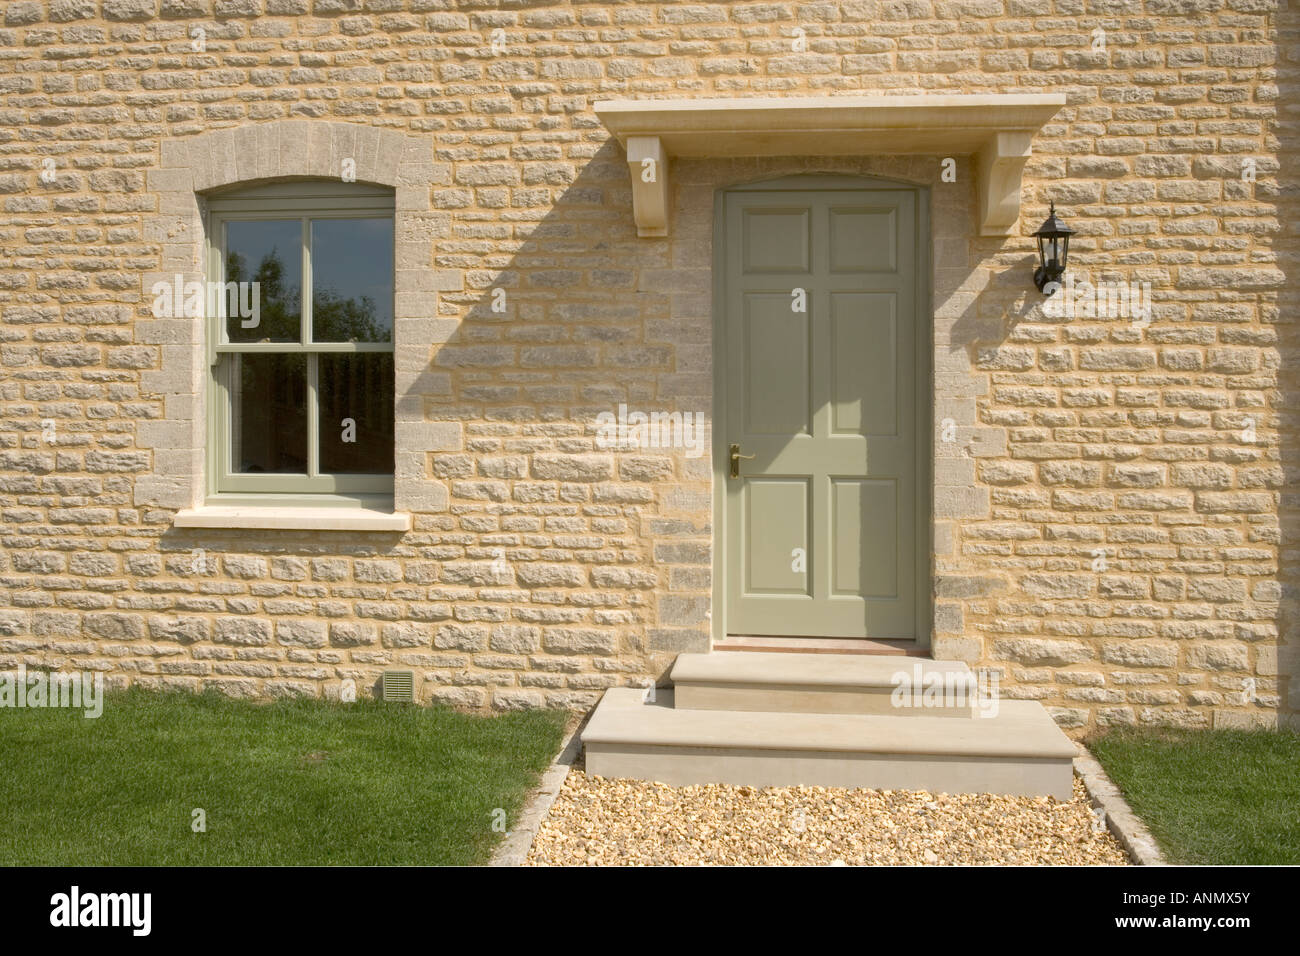 New house build painted front door in stone wall stock for New house build